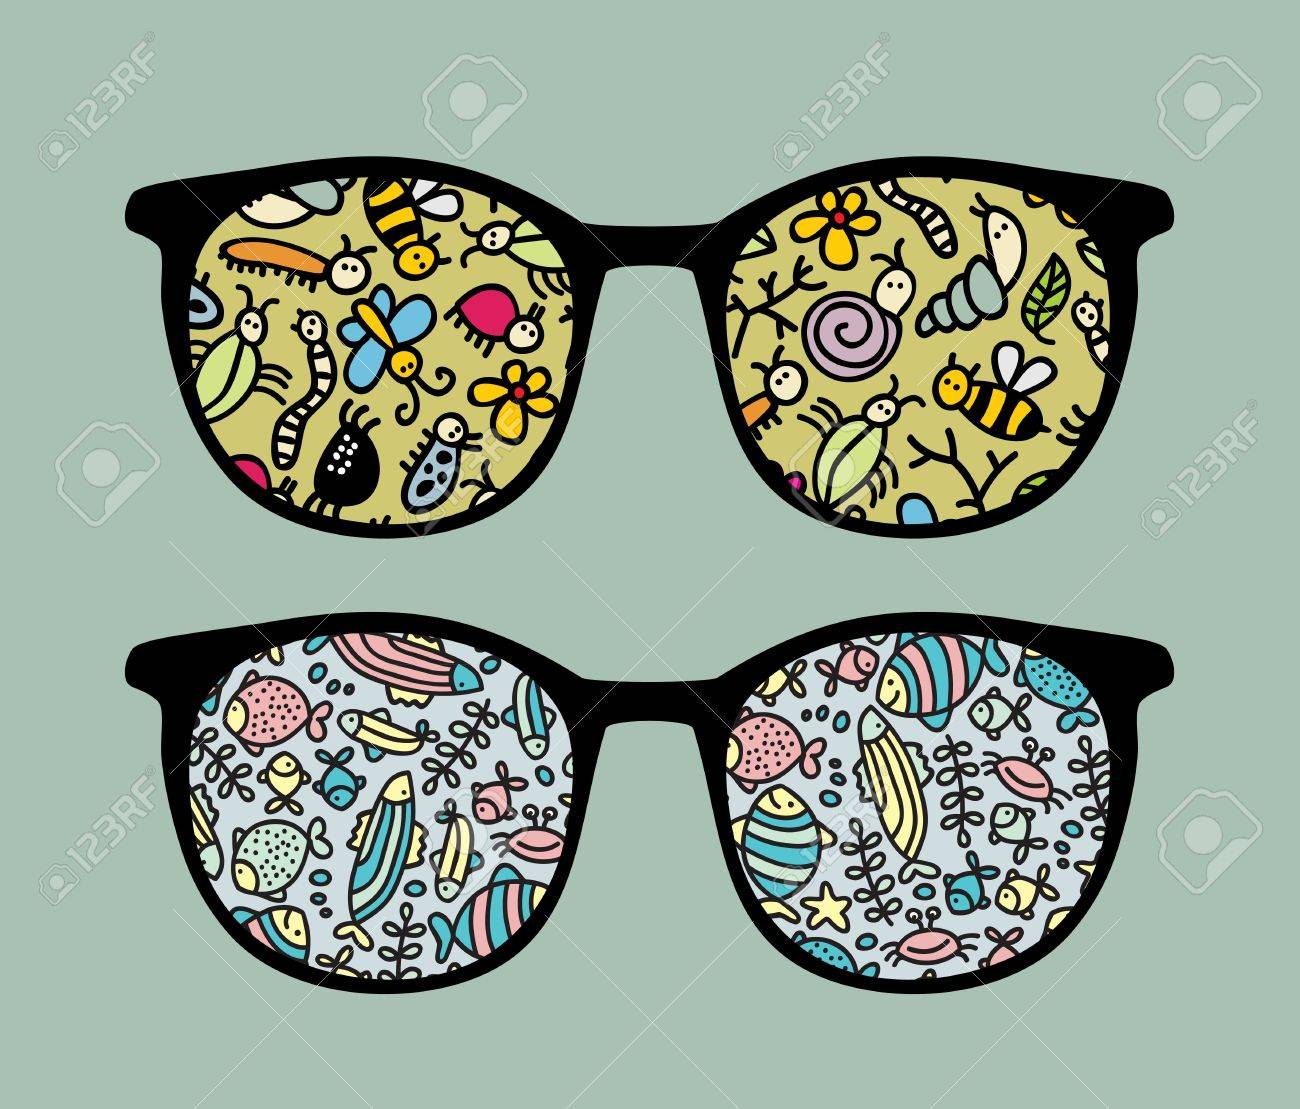 Retro sunglasses with insects and fish reflection in it. Stock Vector - 13285316